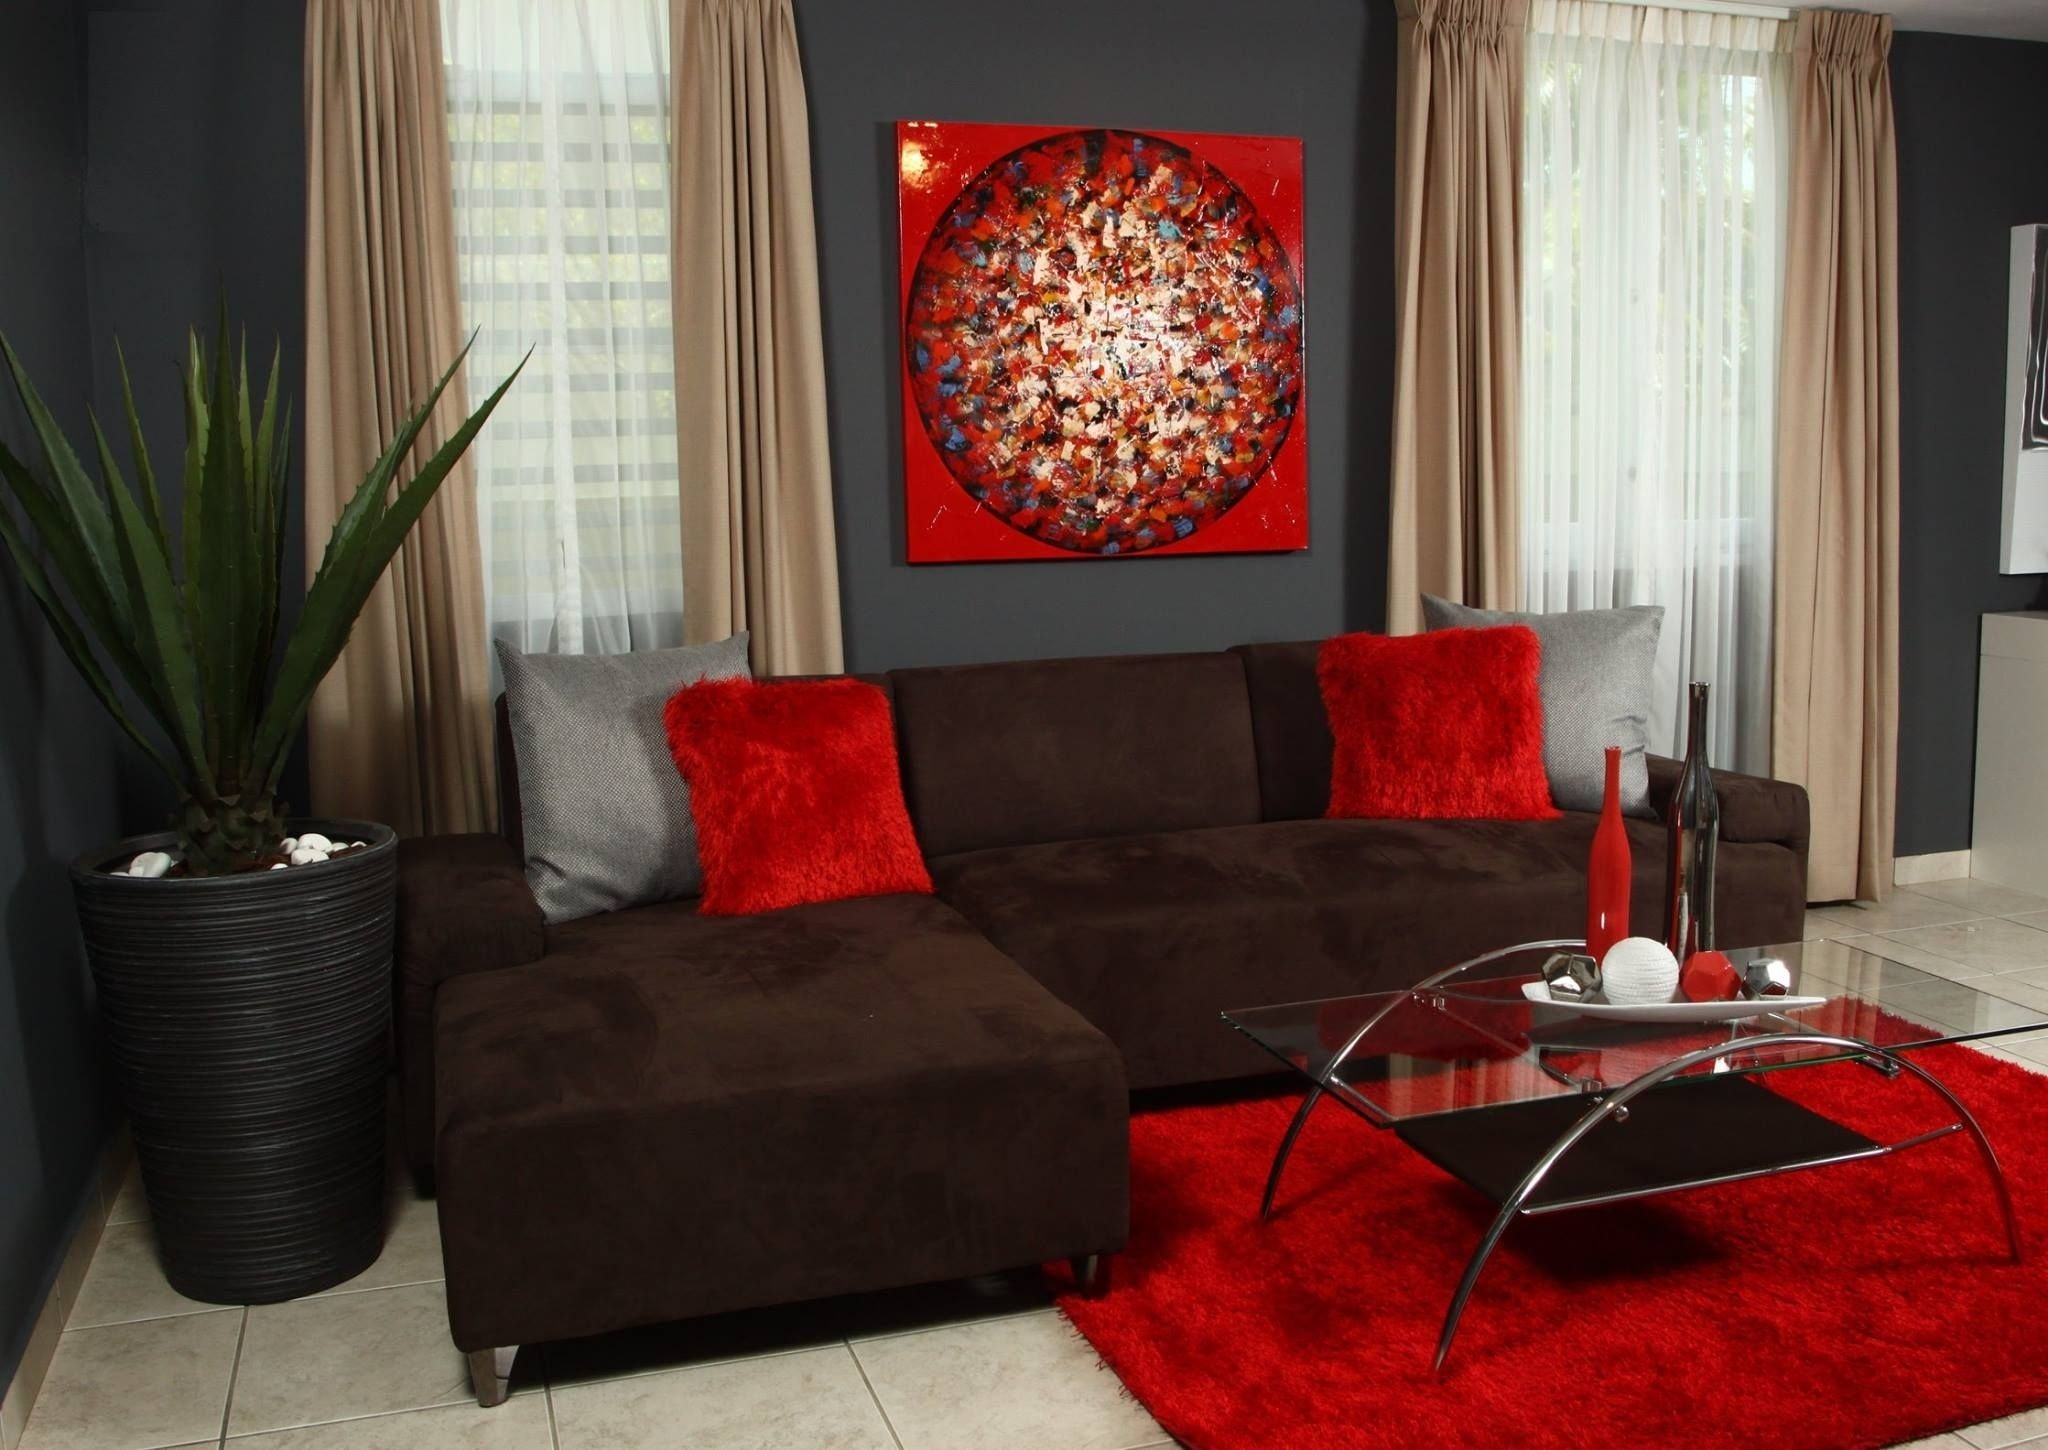 10 Best Red And Brown Living Room Ideas living room with brown sofa living room pinterest red living 2020